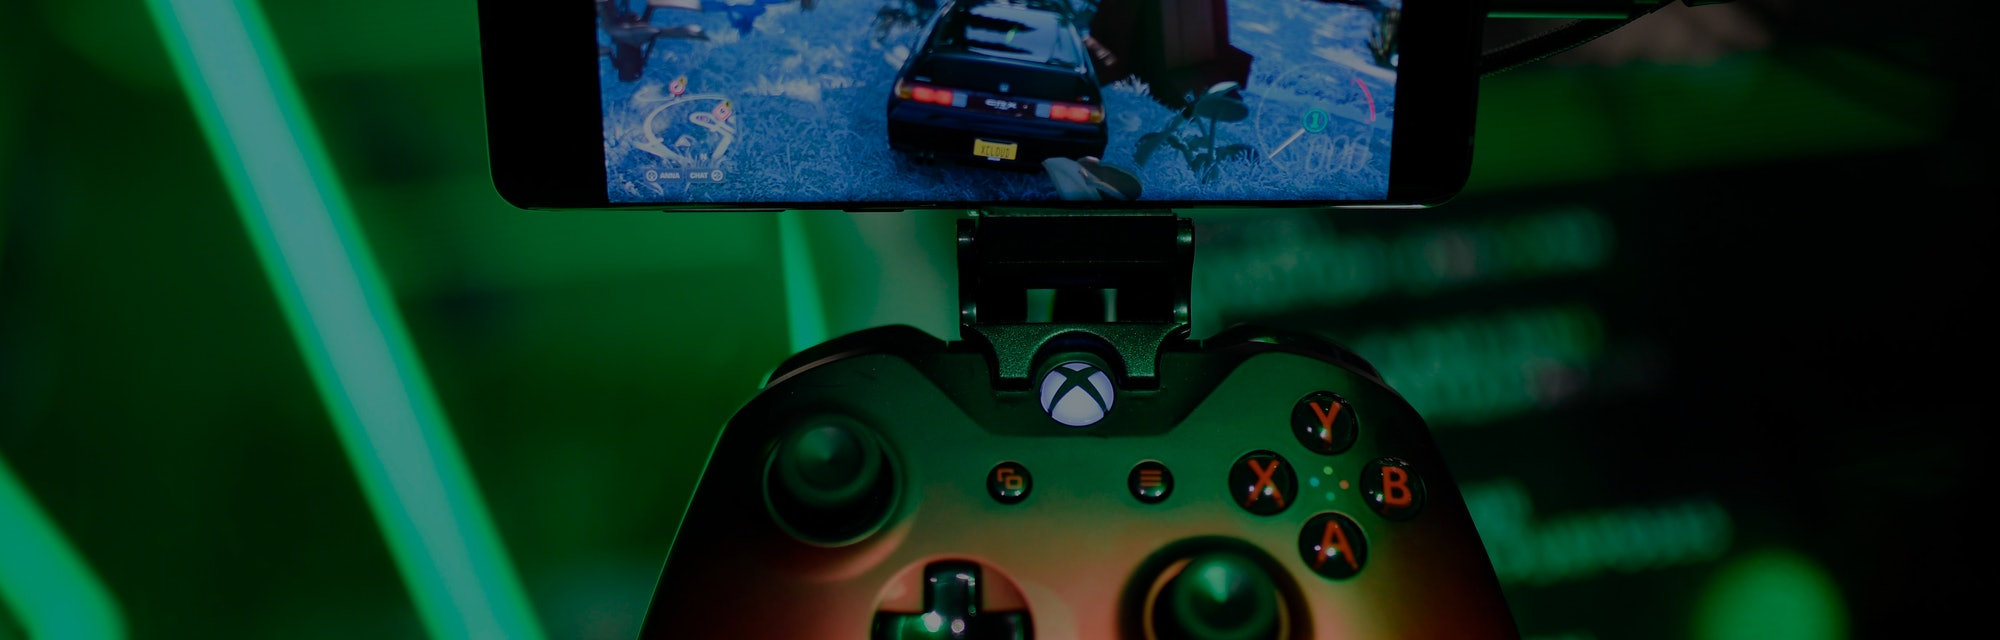 A cloud-based console is displayed at the Microsoft Xbox stand during the Video games trade fair Gam...